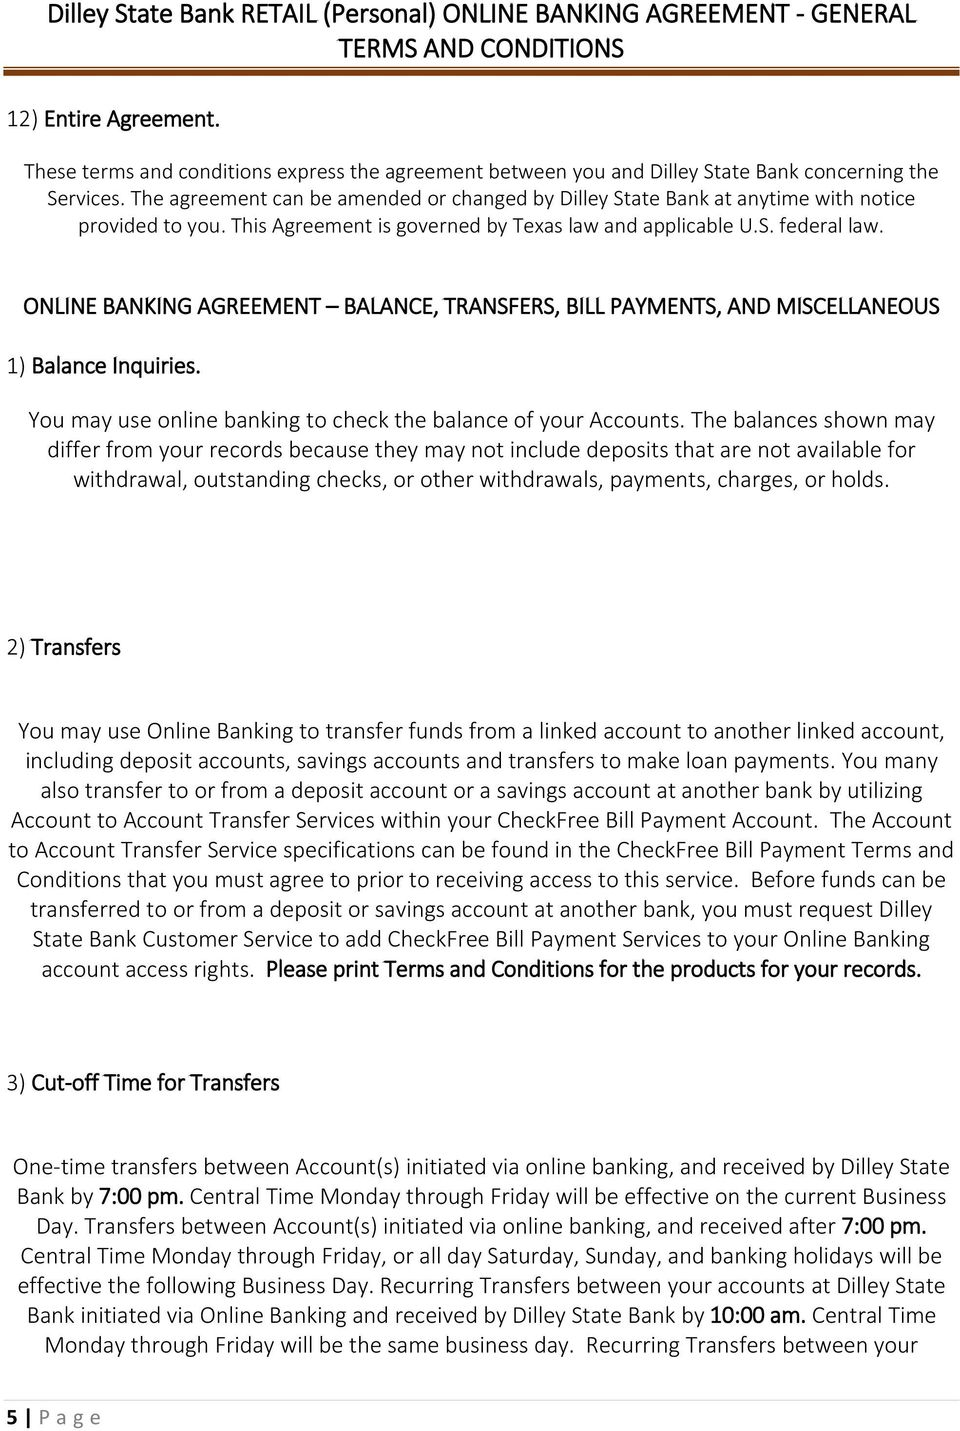 ONLINE BANKING AGREEMENT BALANCE, TRANSFERS, BILL PAYMENTS, AND MISCELLANEOUS 1) Balance Inquiries. You may use online banking to check the balance of your Accounts.